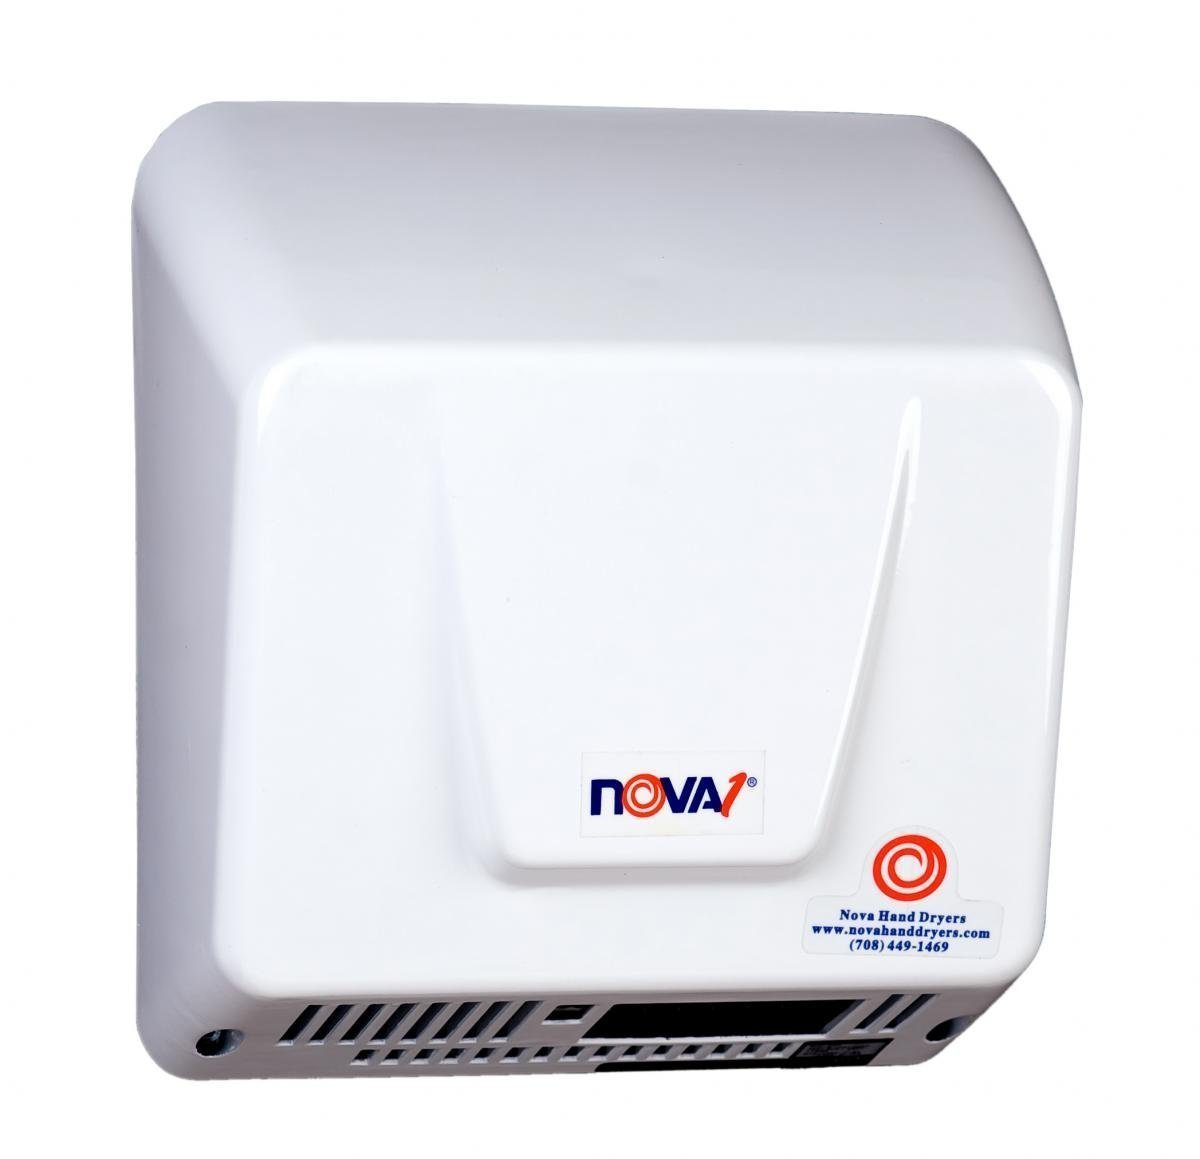 0830 Nova 1 Automatic Hand Dryer - infared sensor activated, 100 VAC to 240 VAC - 50 or 60 Hz World Dryer